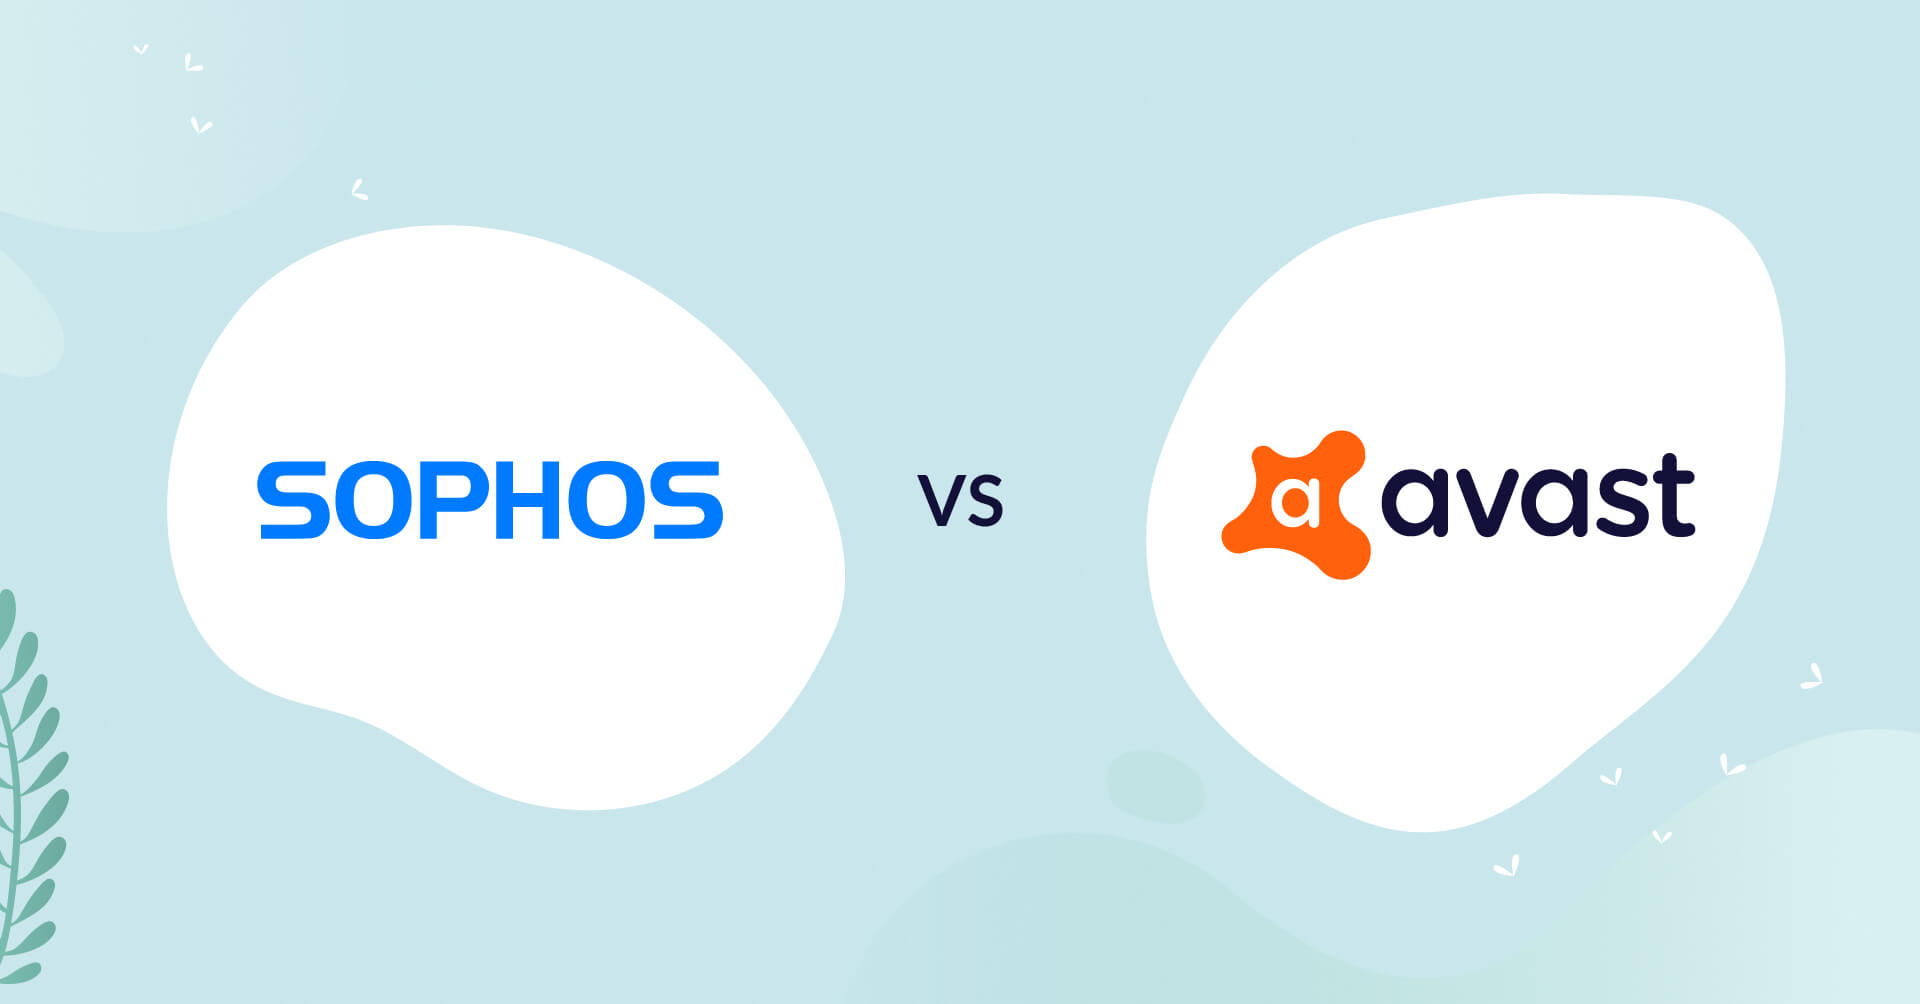 sophos logo vs avast logo antivirus comparison header for how to choose article